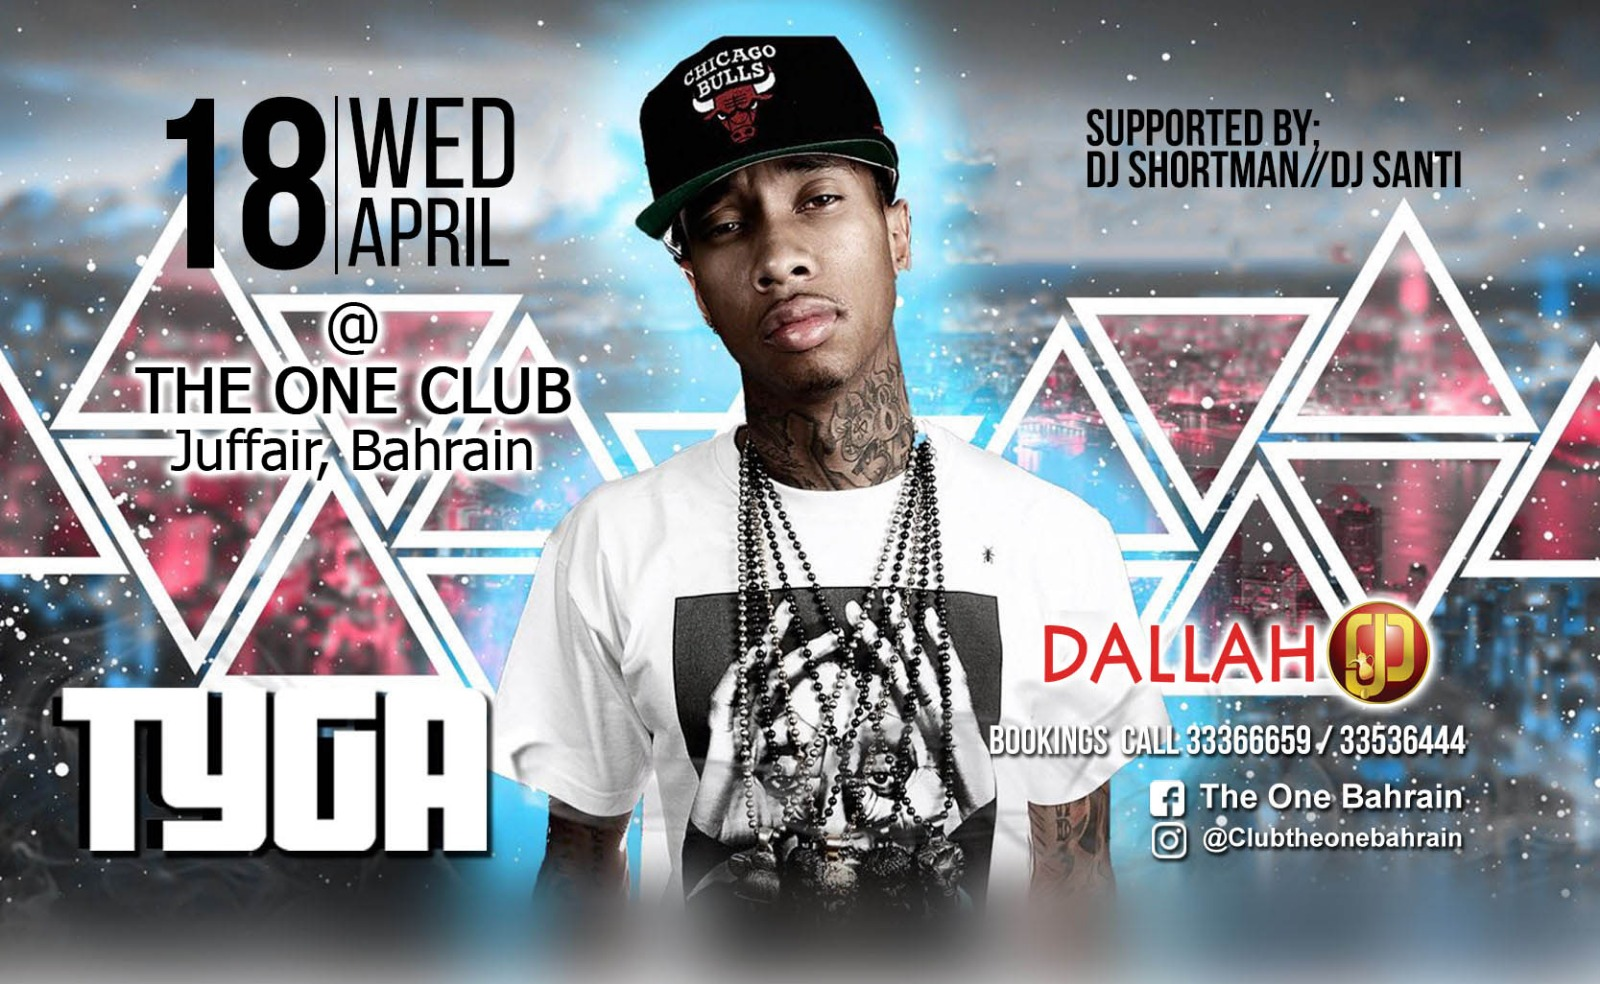 Tyga Live The One Events Whatsupbahrain Net